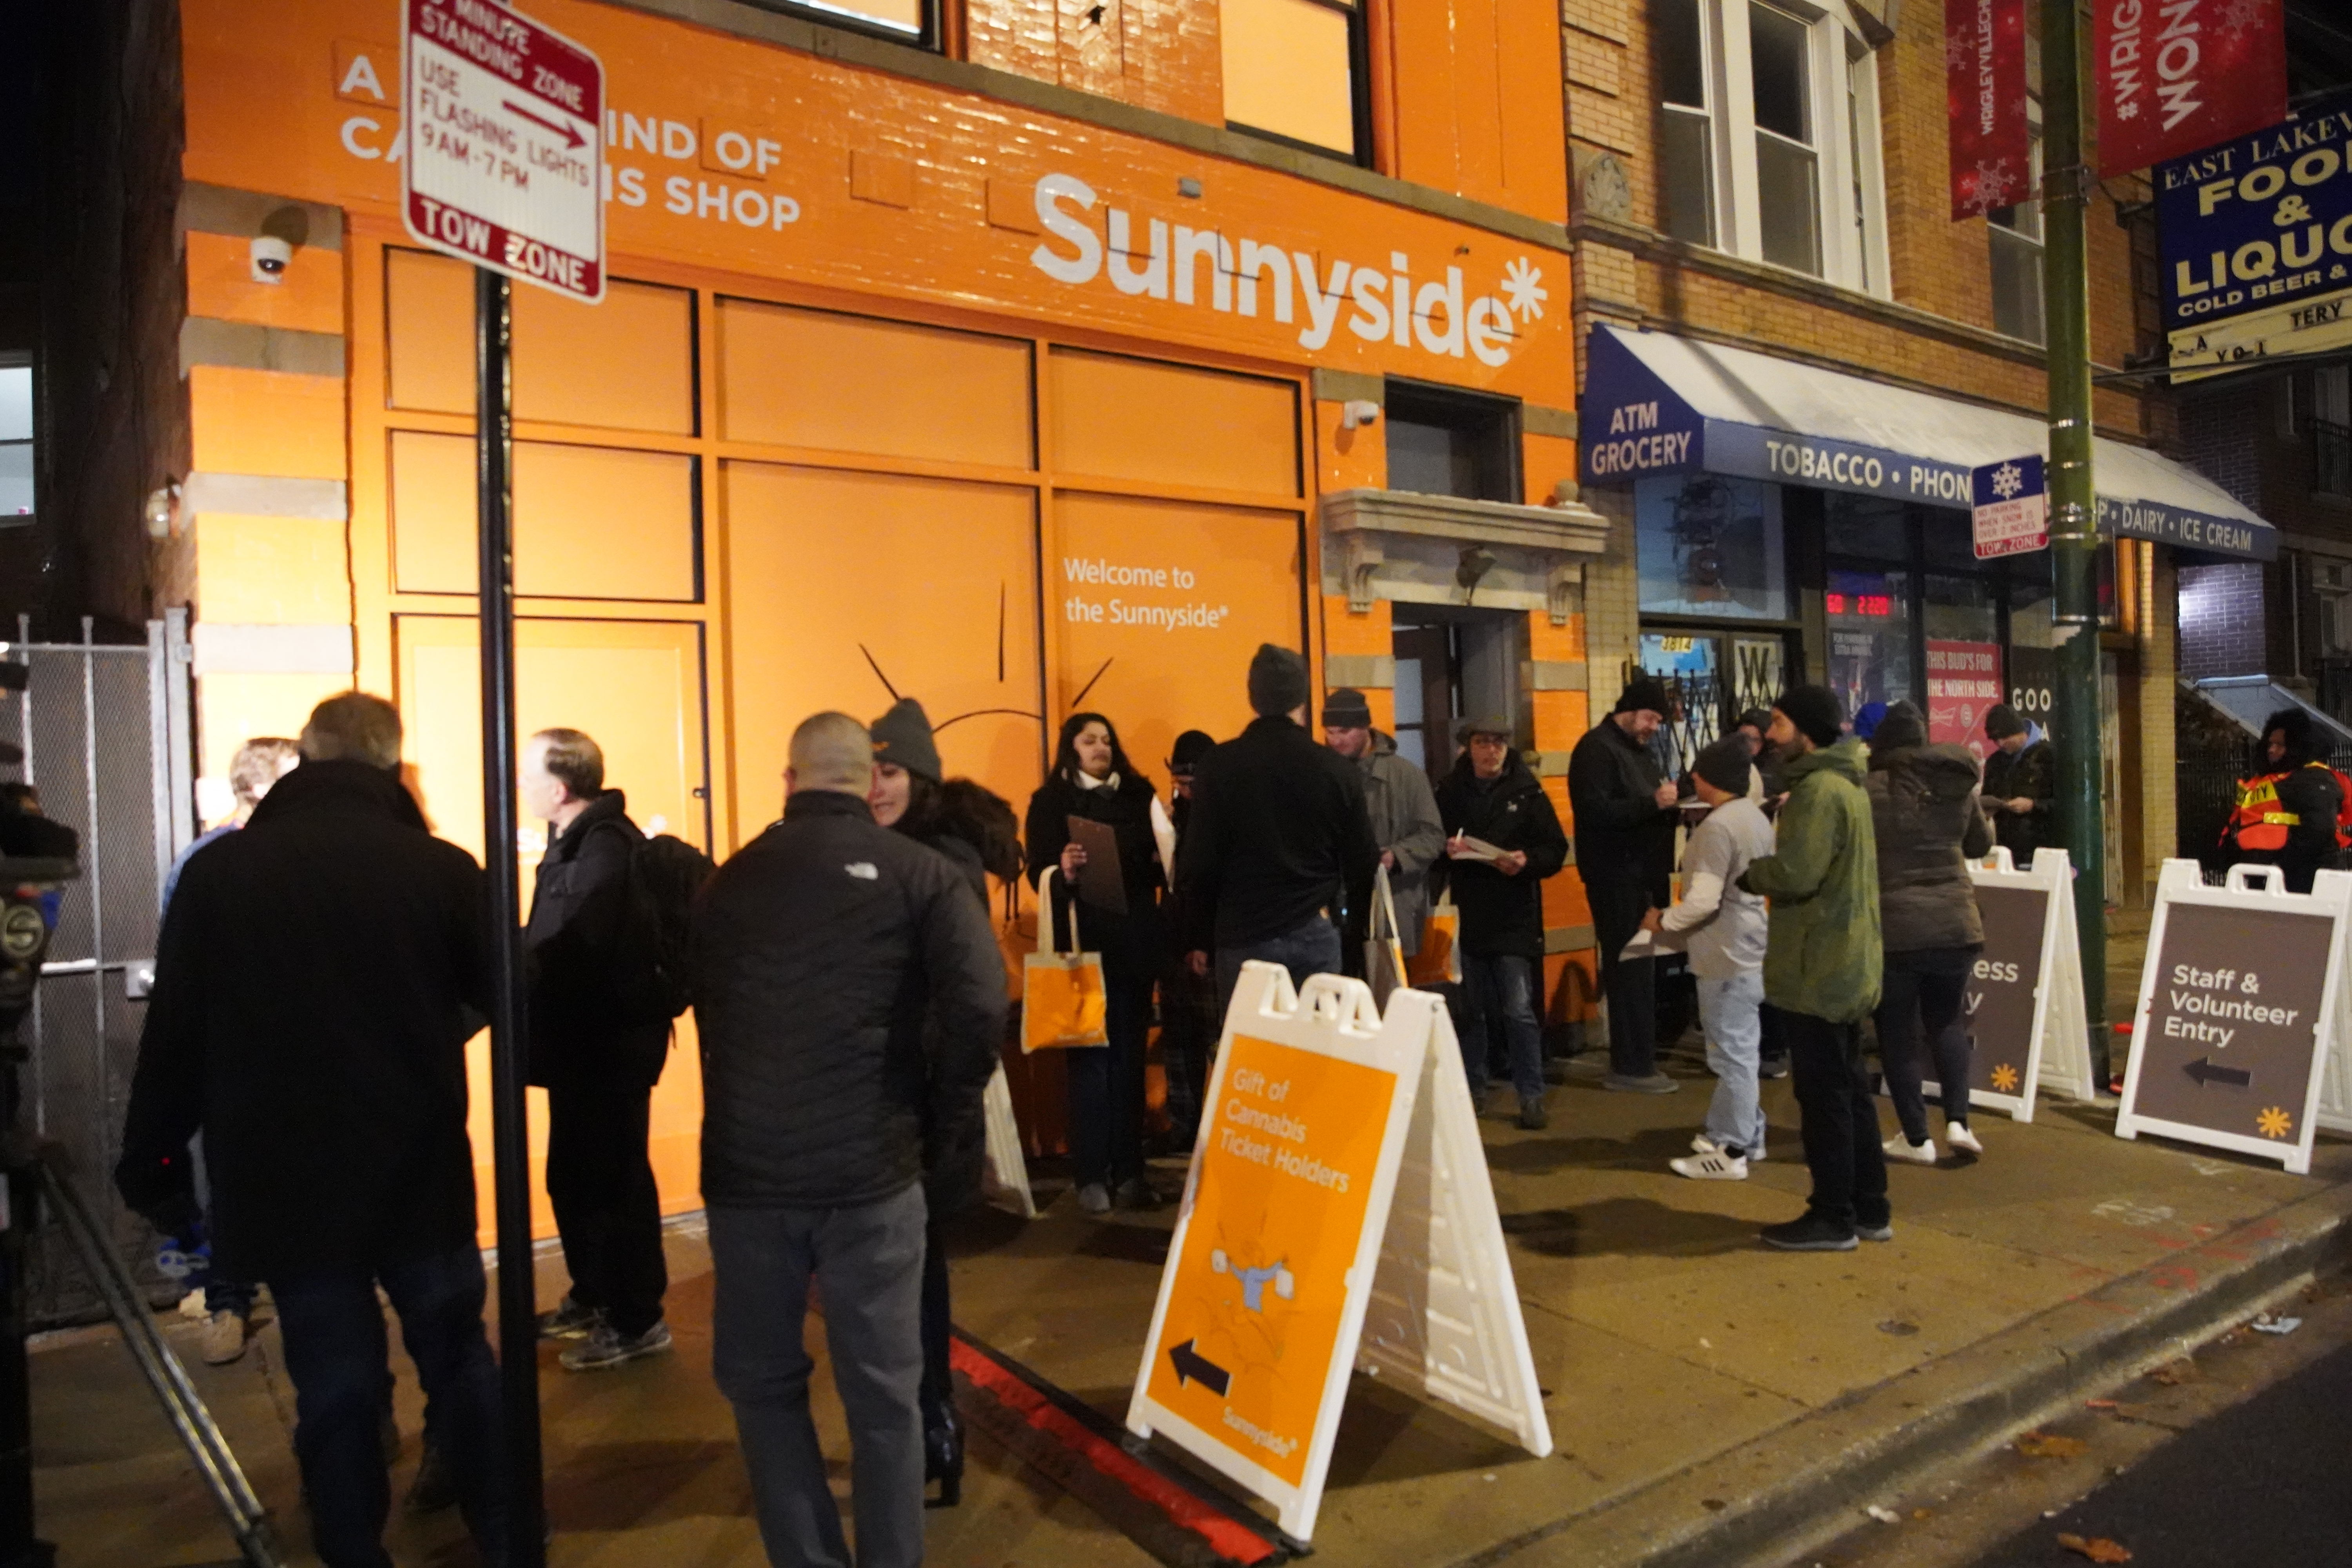 People lined up early Jan. 1 before Sunnyside opened for the first day of legal sales of recreational marijuana.